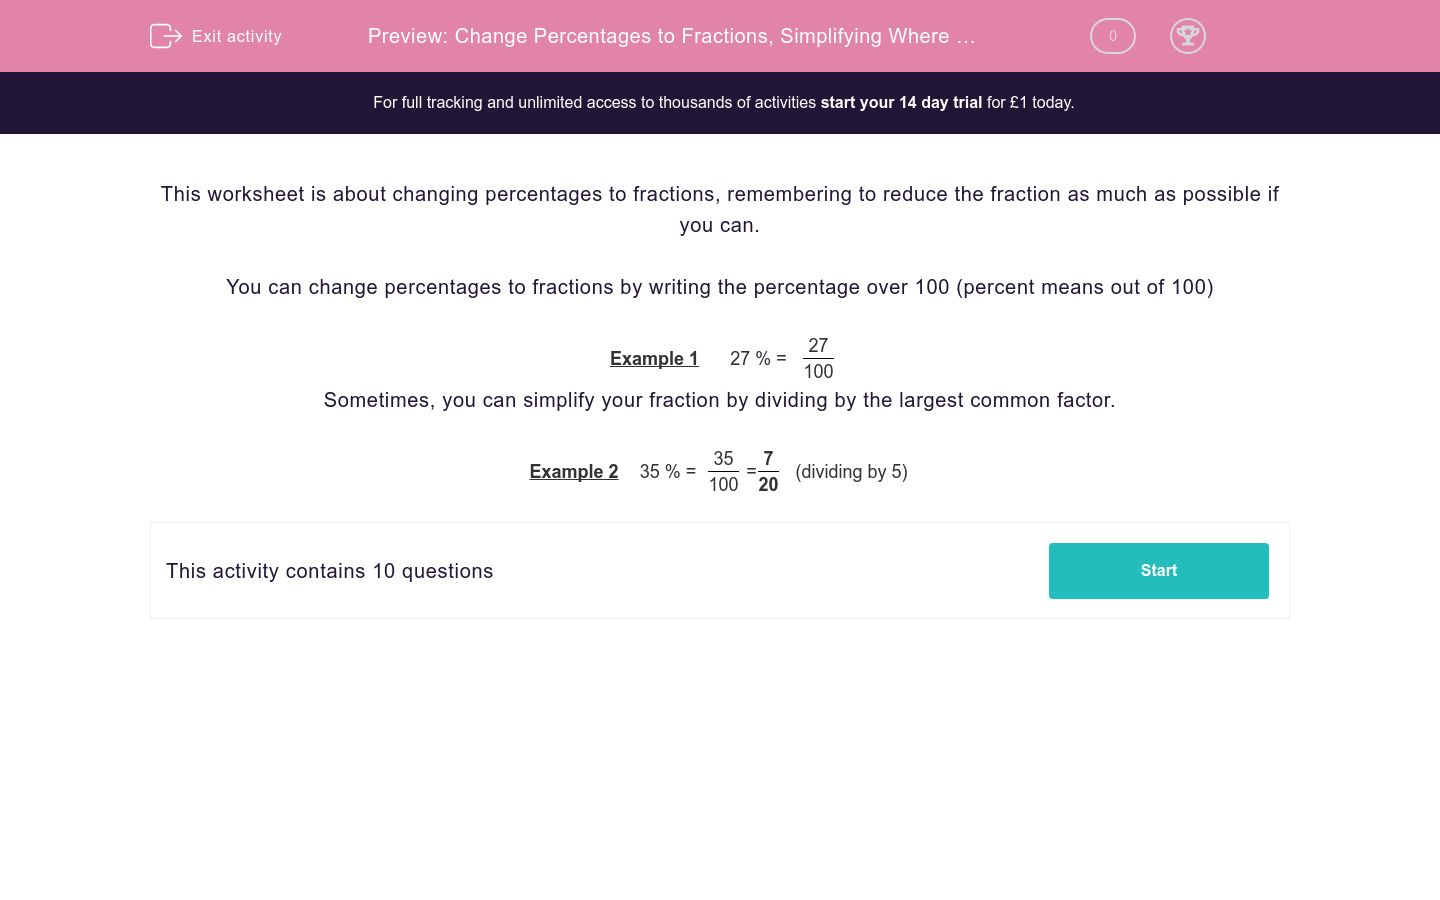 Change Percentages To Fractions Simplifying Where